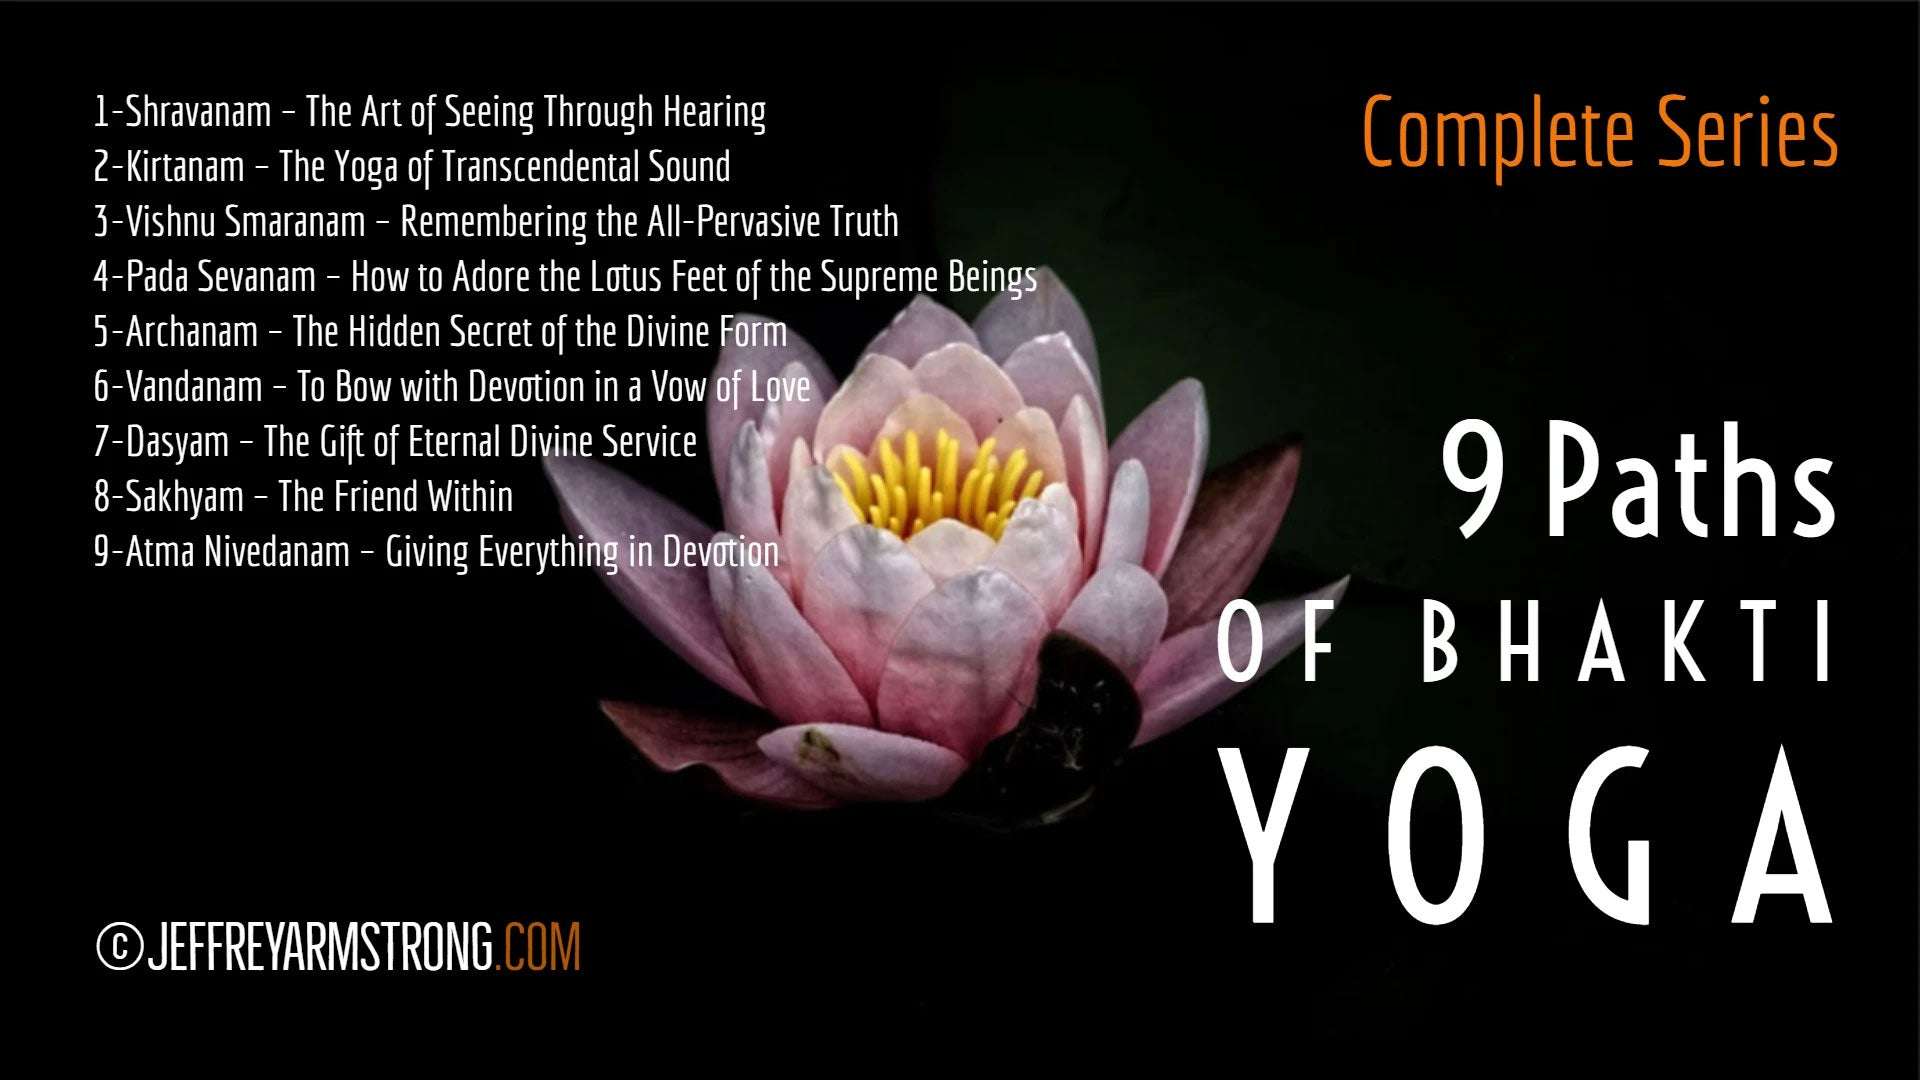 9 Paths of Bhakti Yoga (9 Lessons)